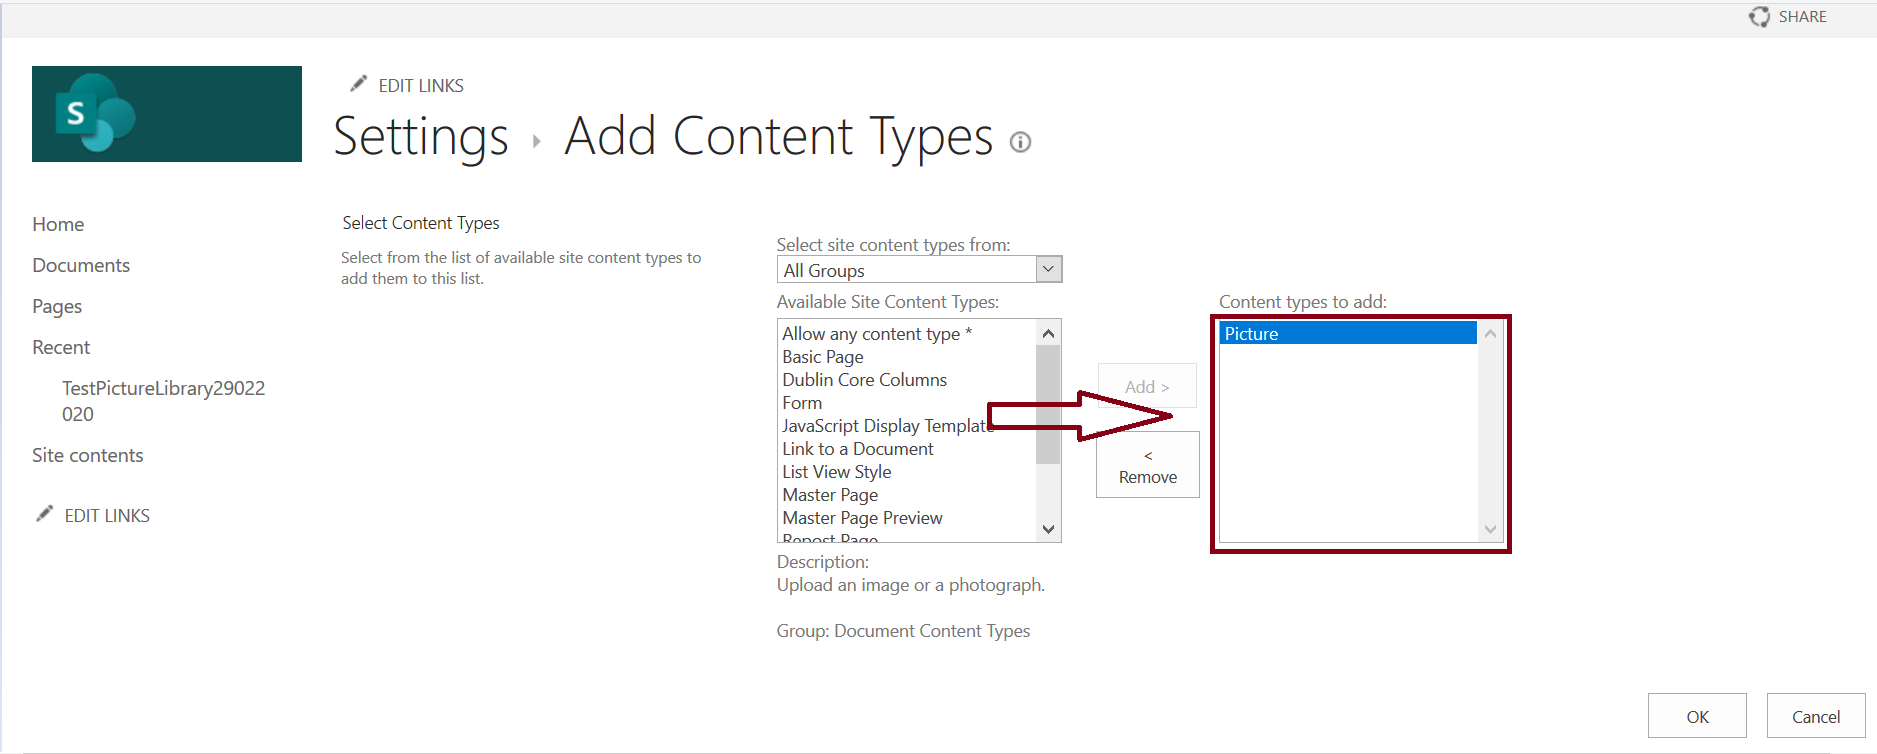 Add Content Types - Picture in Document Library